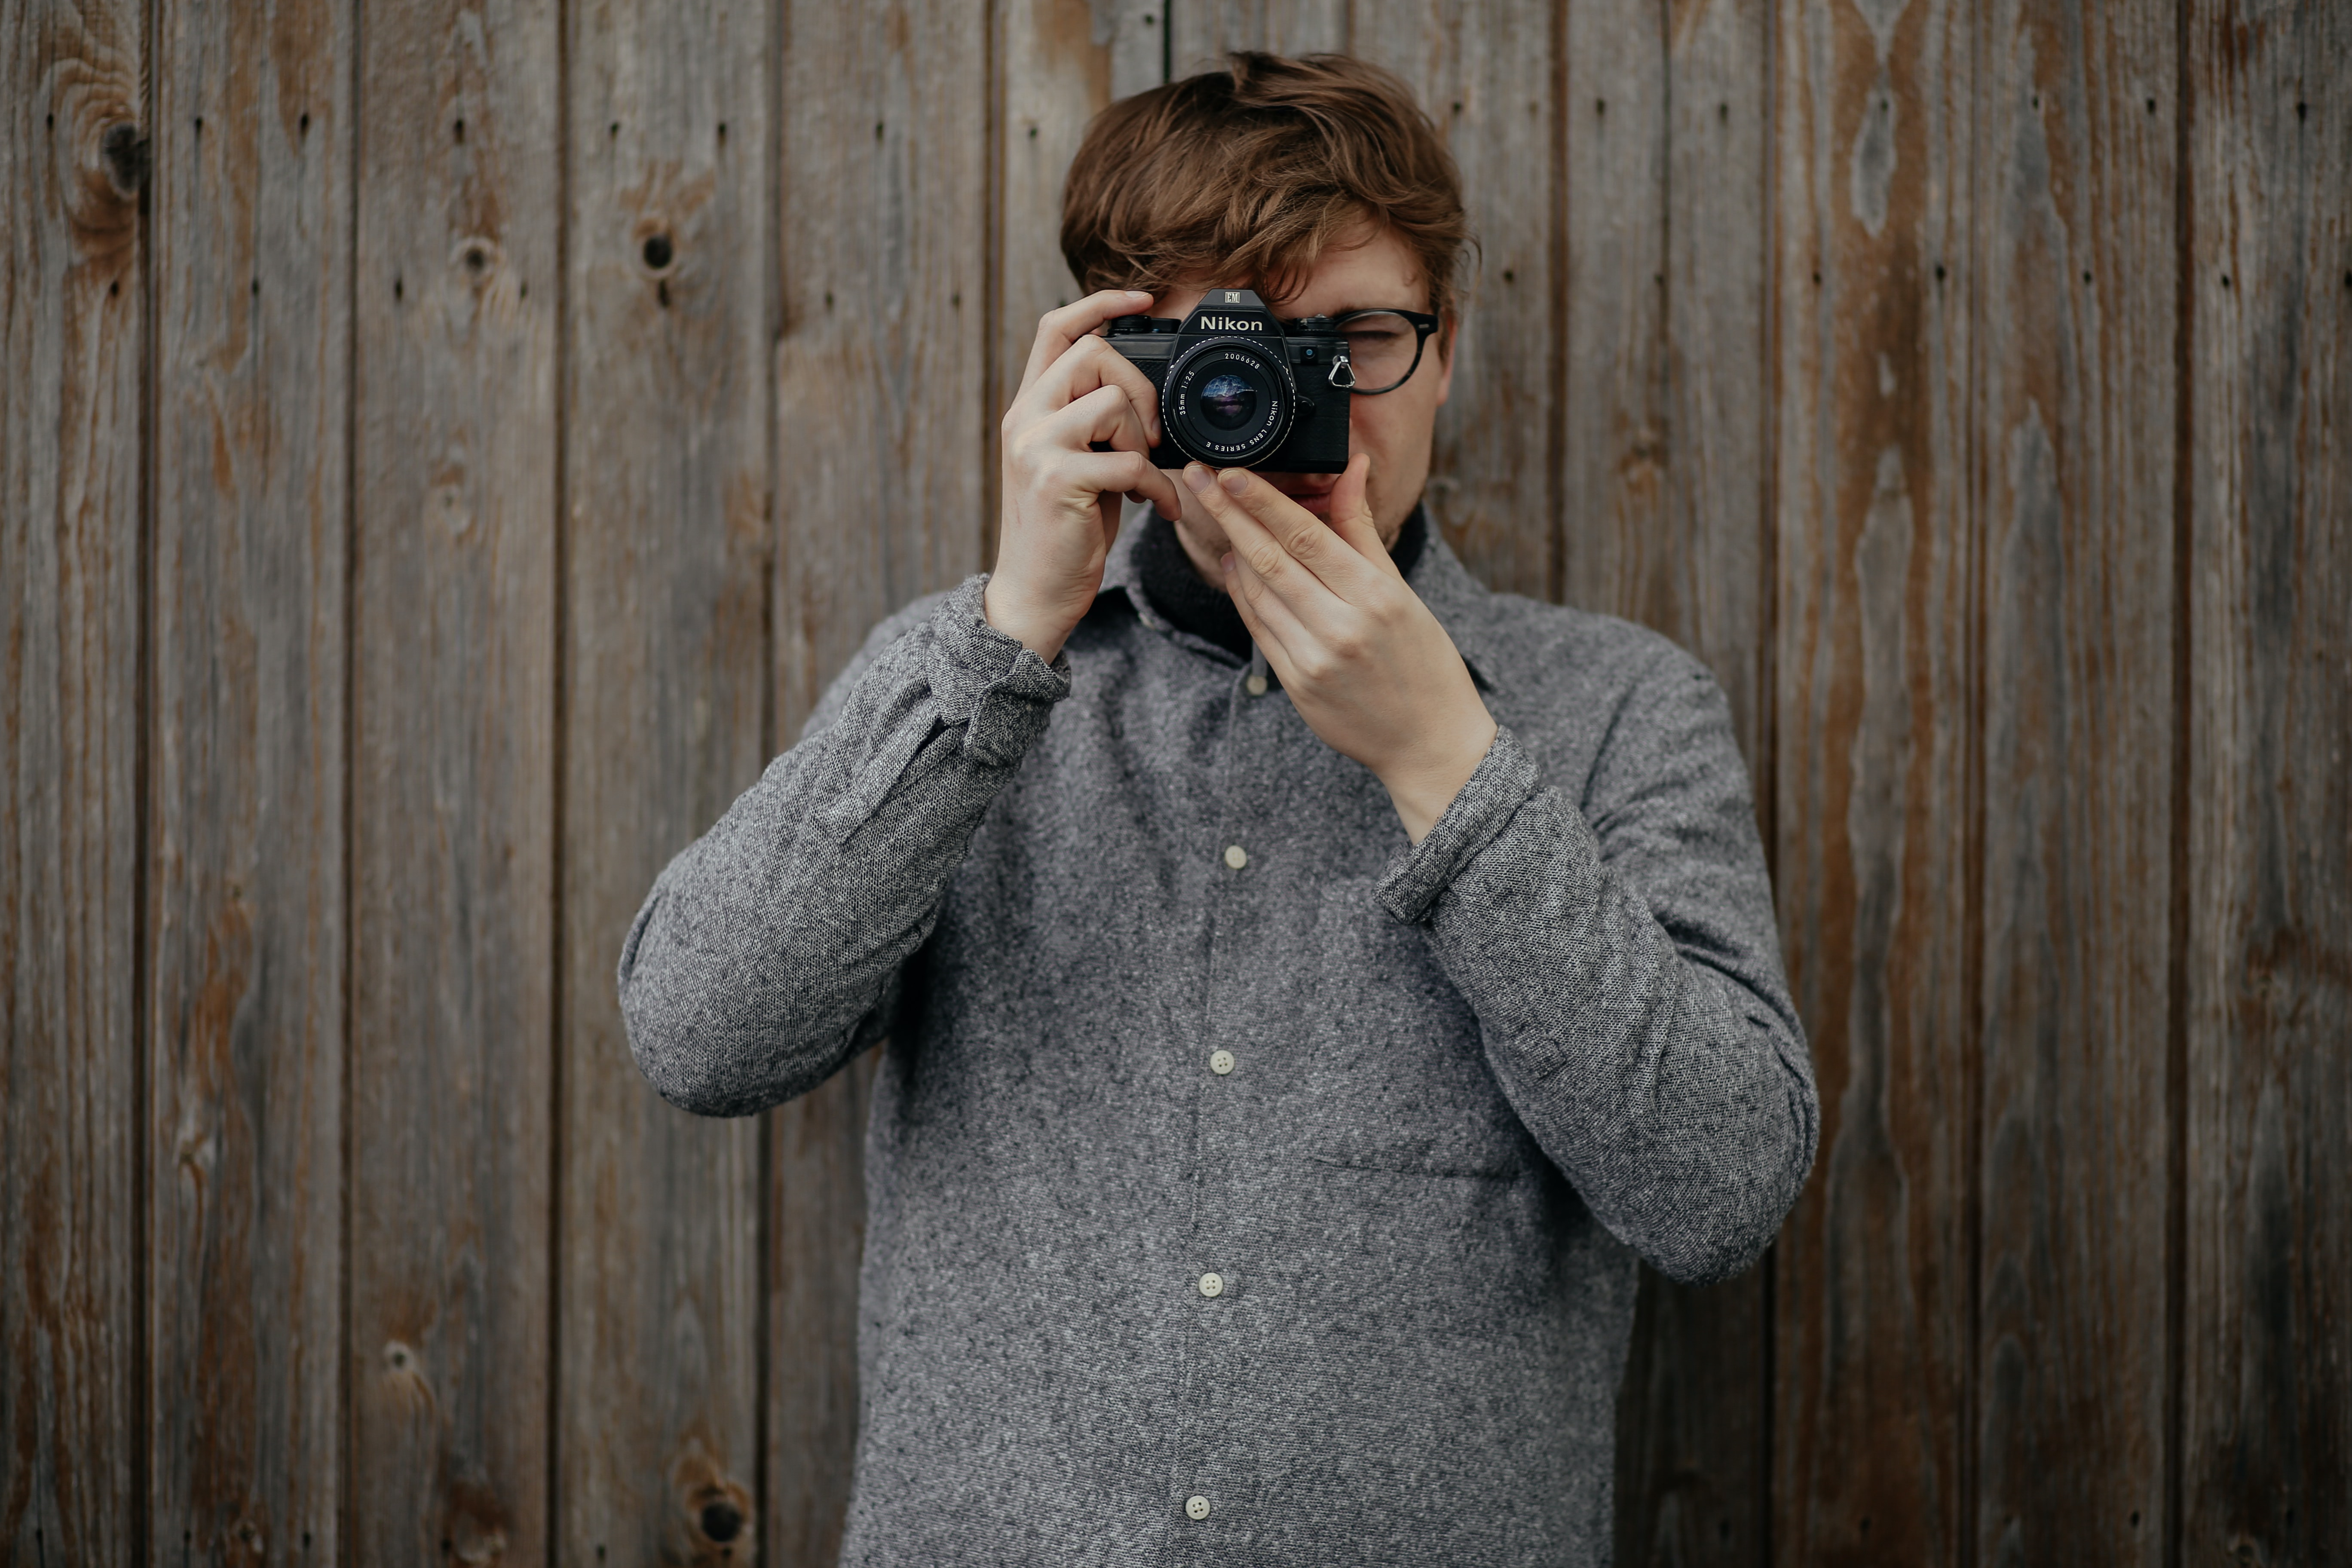 A person stands against a wooden wall, taking a photograph with a Nikon camera